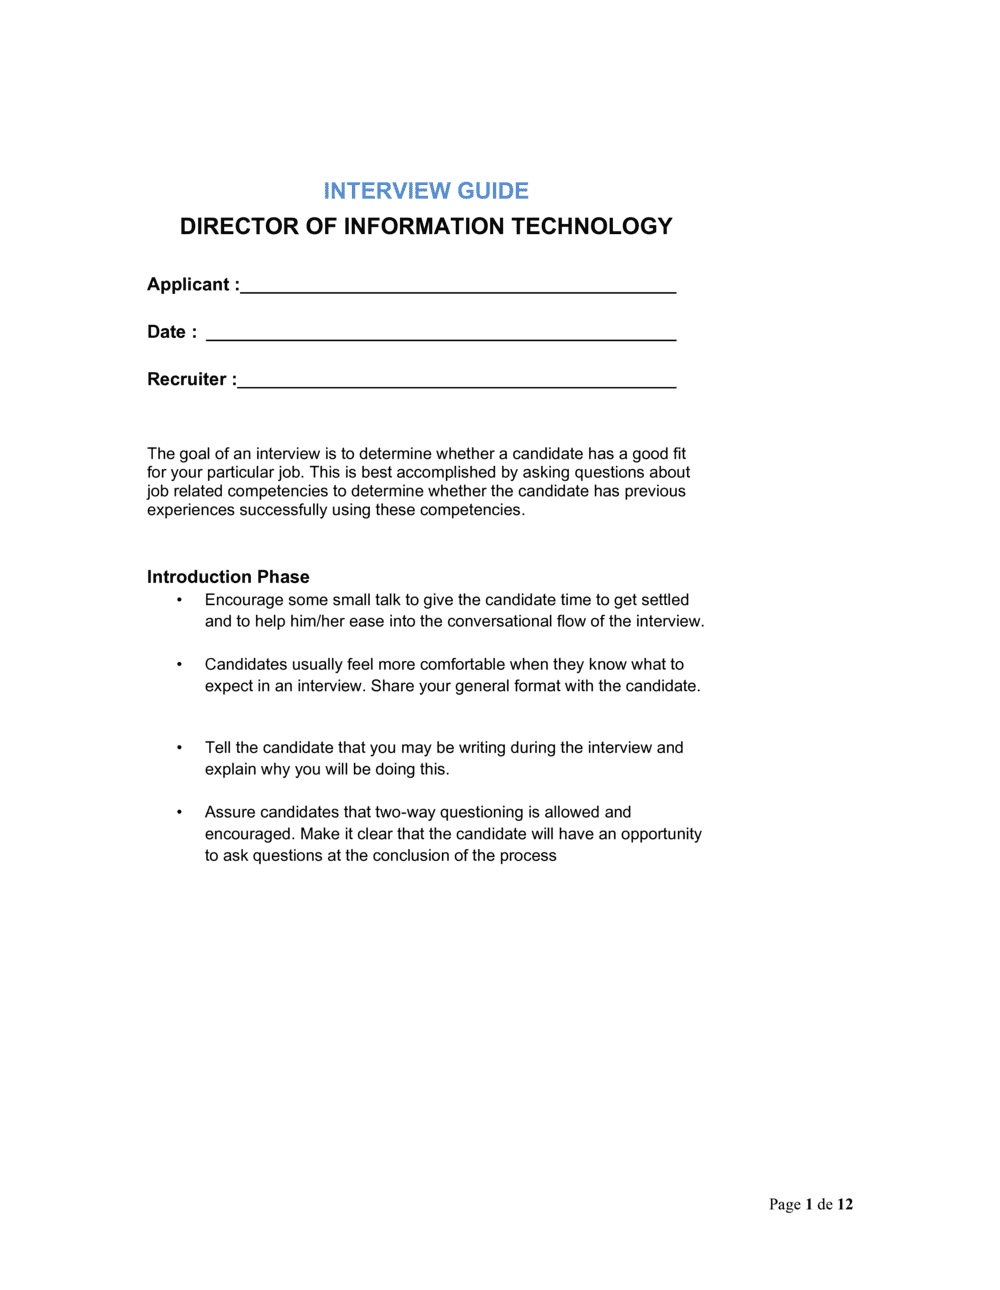 Business-in-a-Box's Interview Guide Director of Information Technology Template